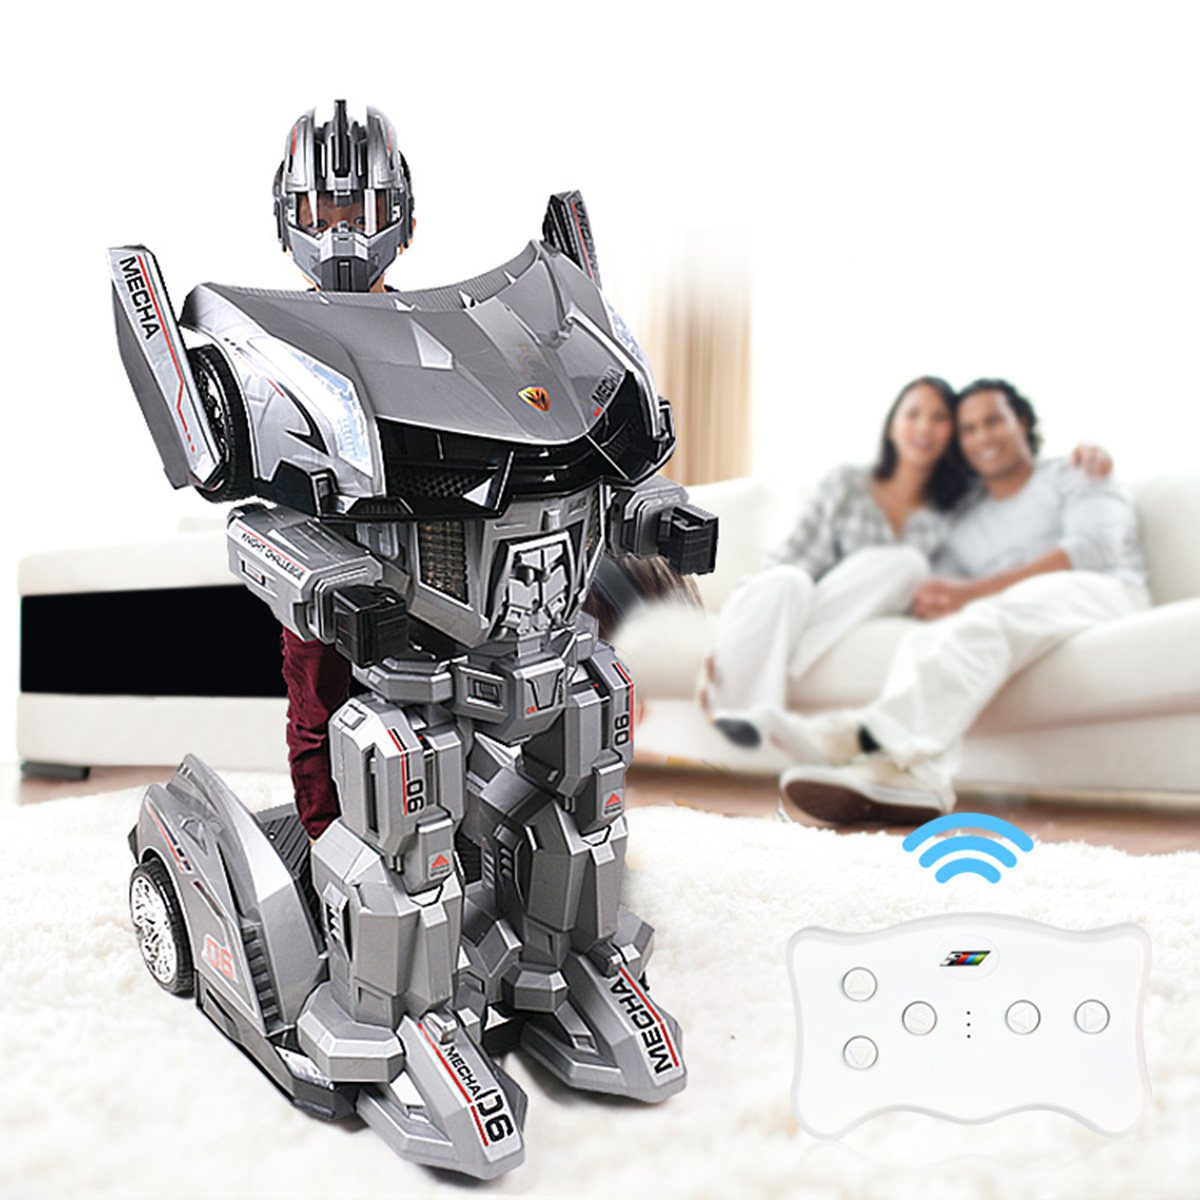 LEORY RC Manned Cyclic Charging Humanoid Robot Toy Car Transformer Movable With LED Headlights For Amusement Park Kids Children джинсы скинни с поясом стандартной высоты